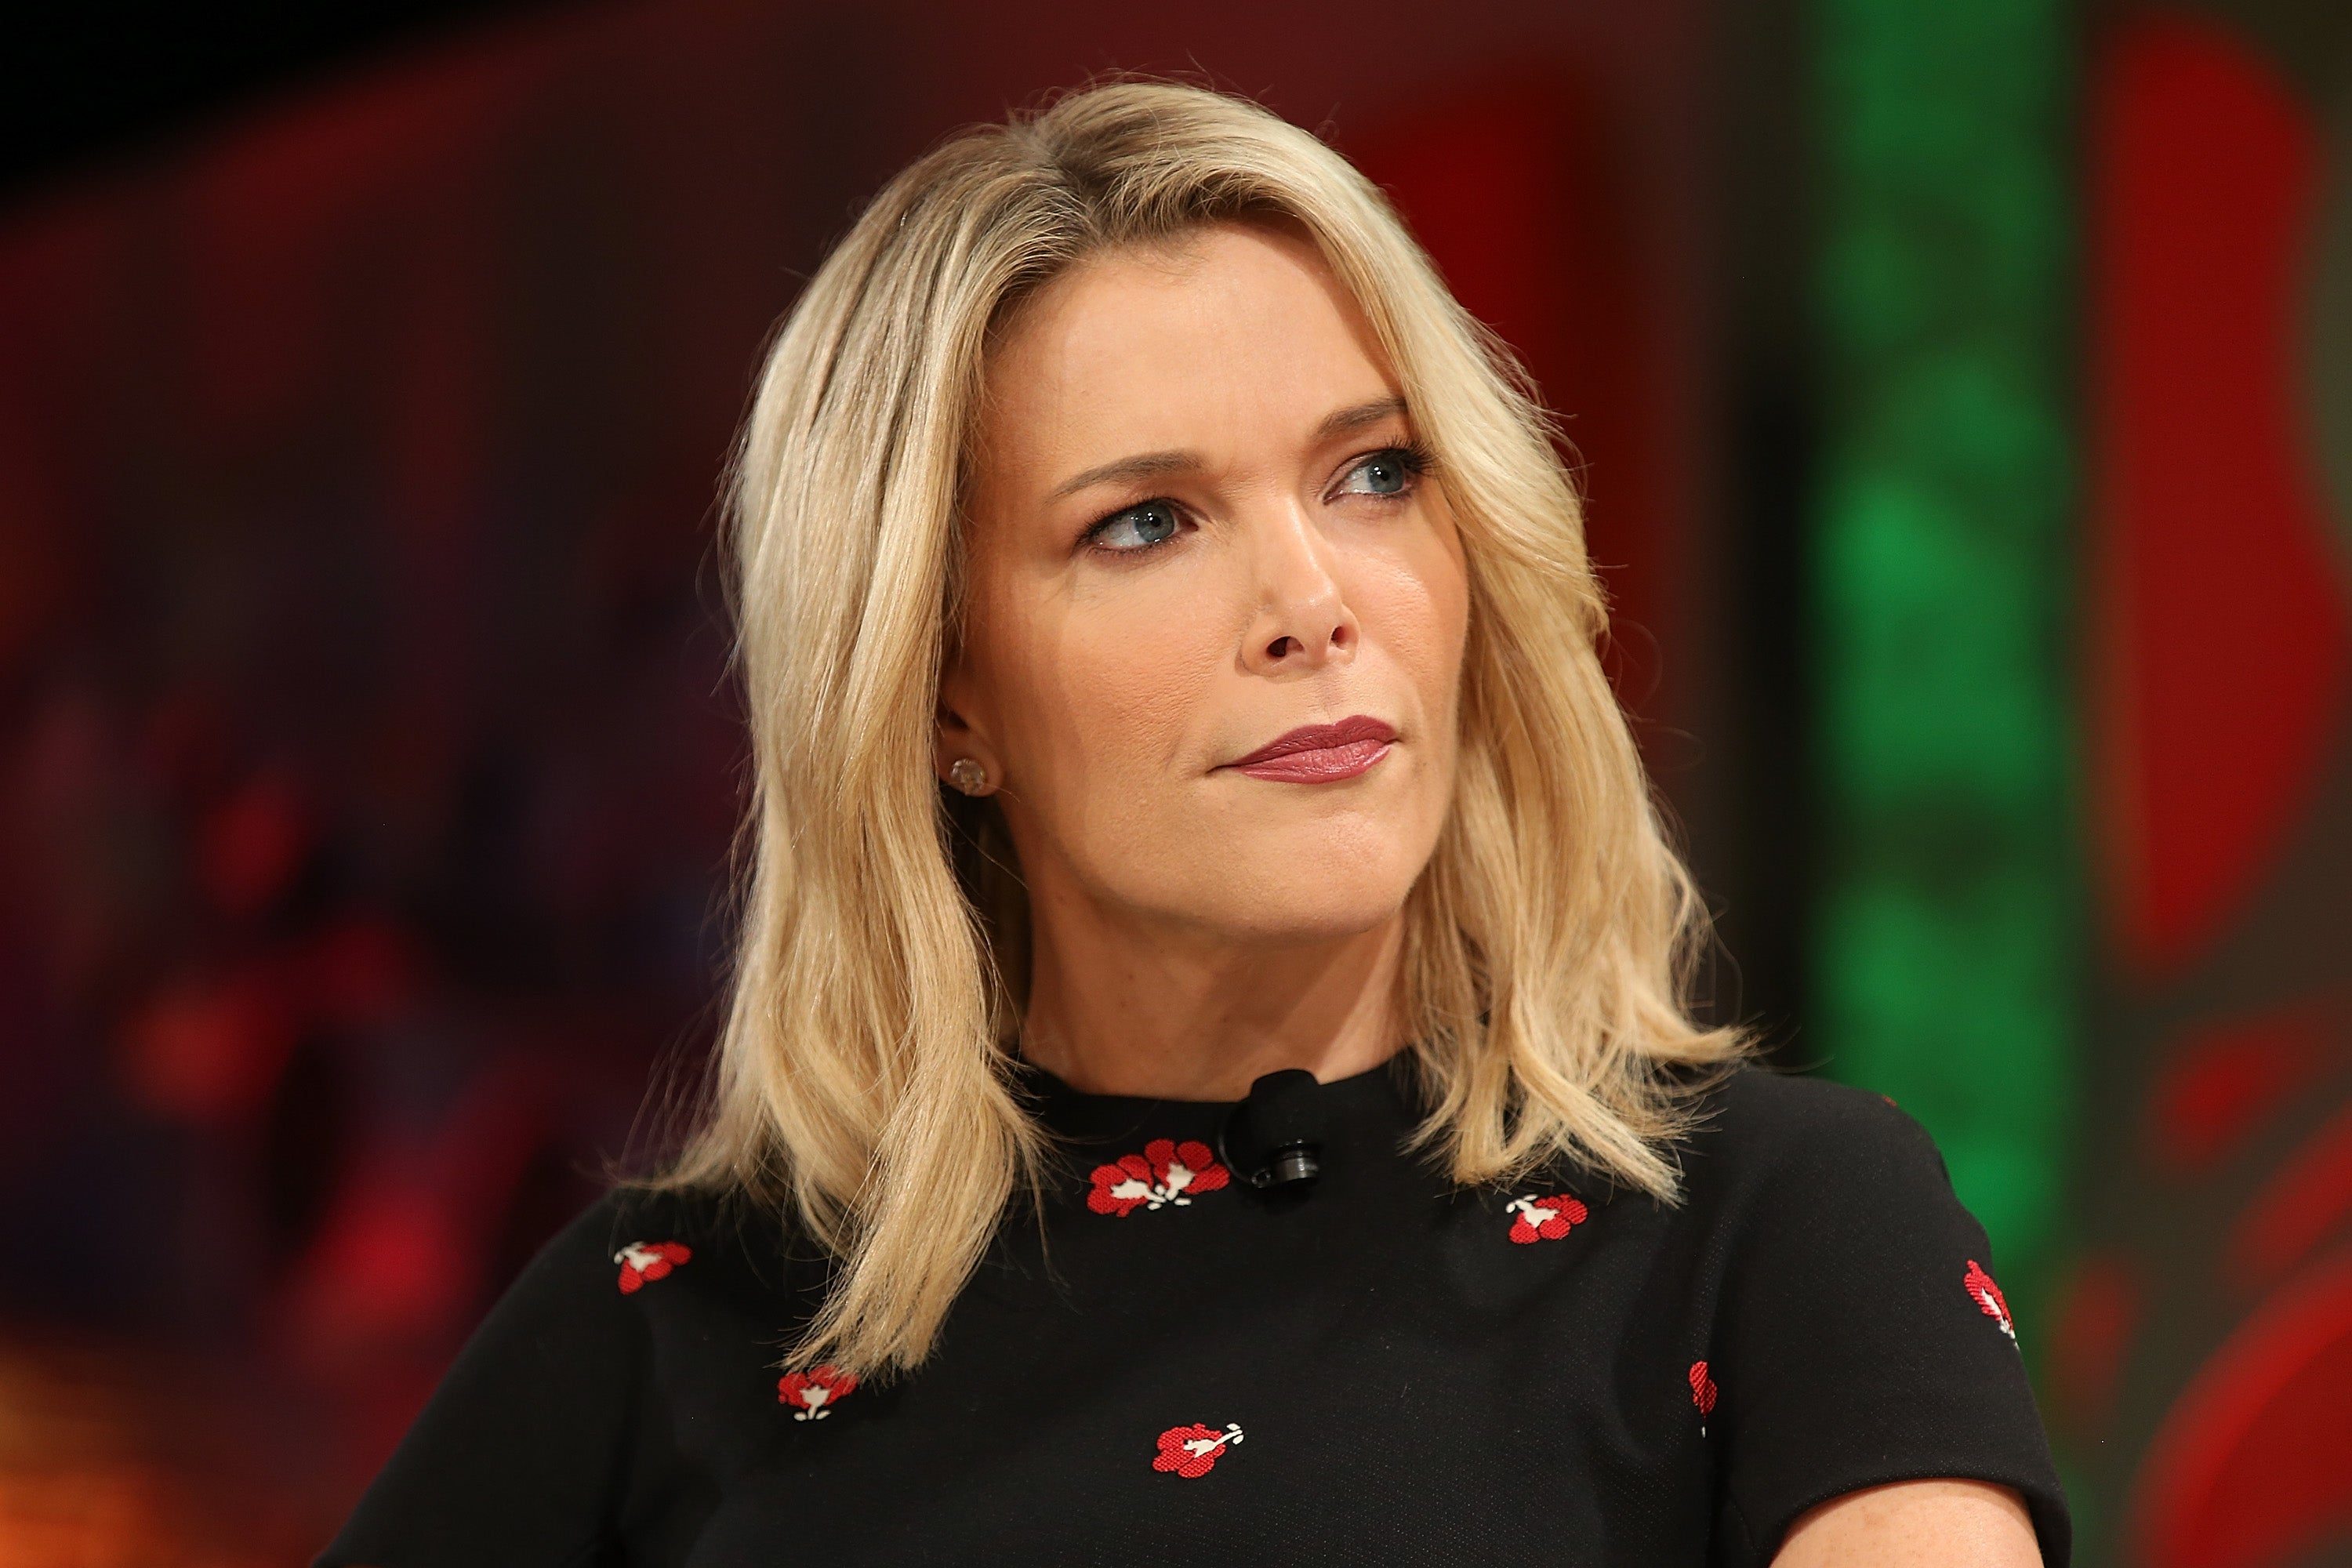 Megyn Kelly Reveals What She's Learned Since Leaving NBC in Fox News Interview